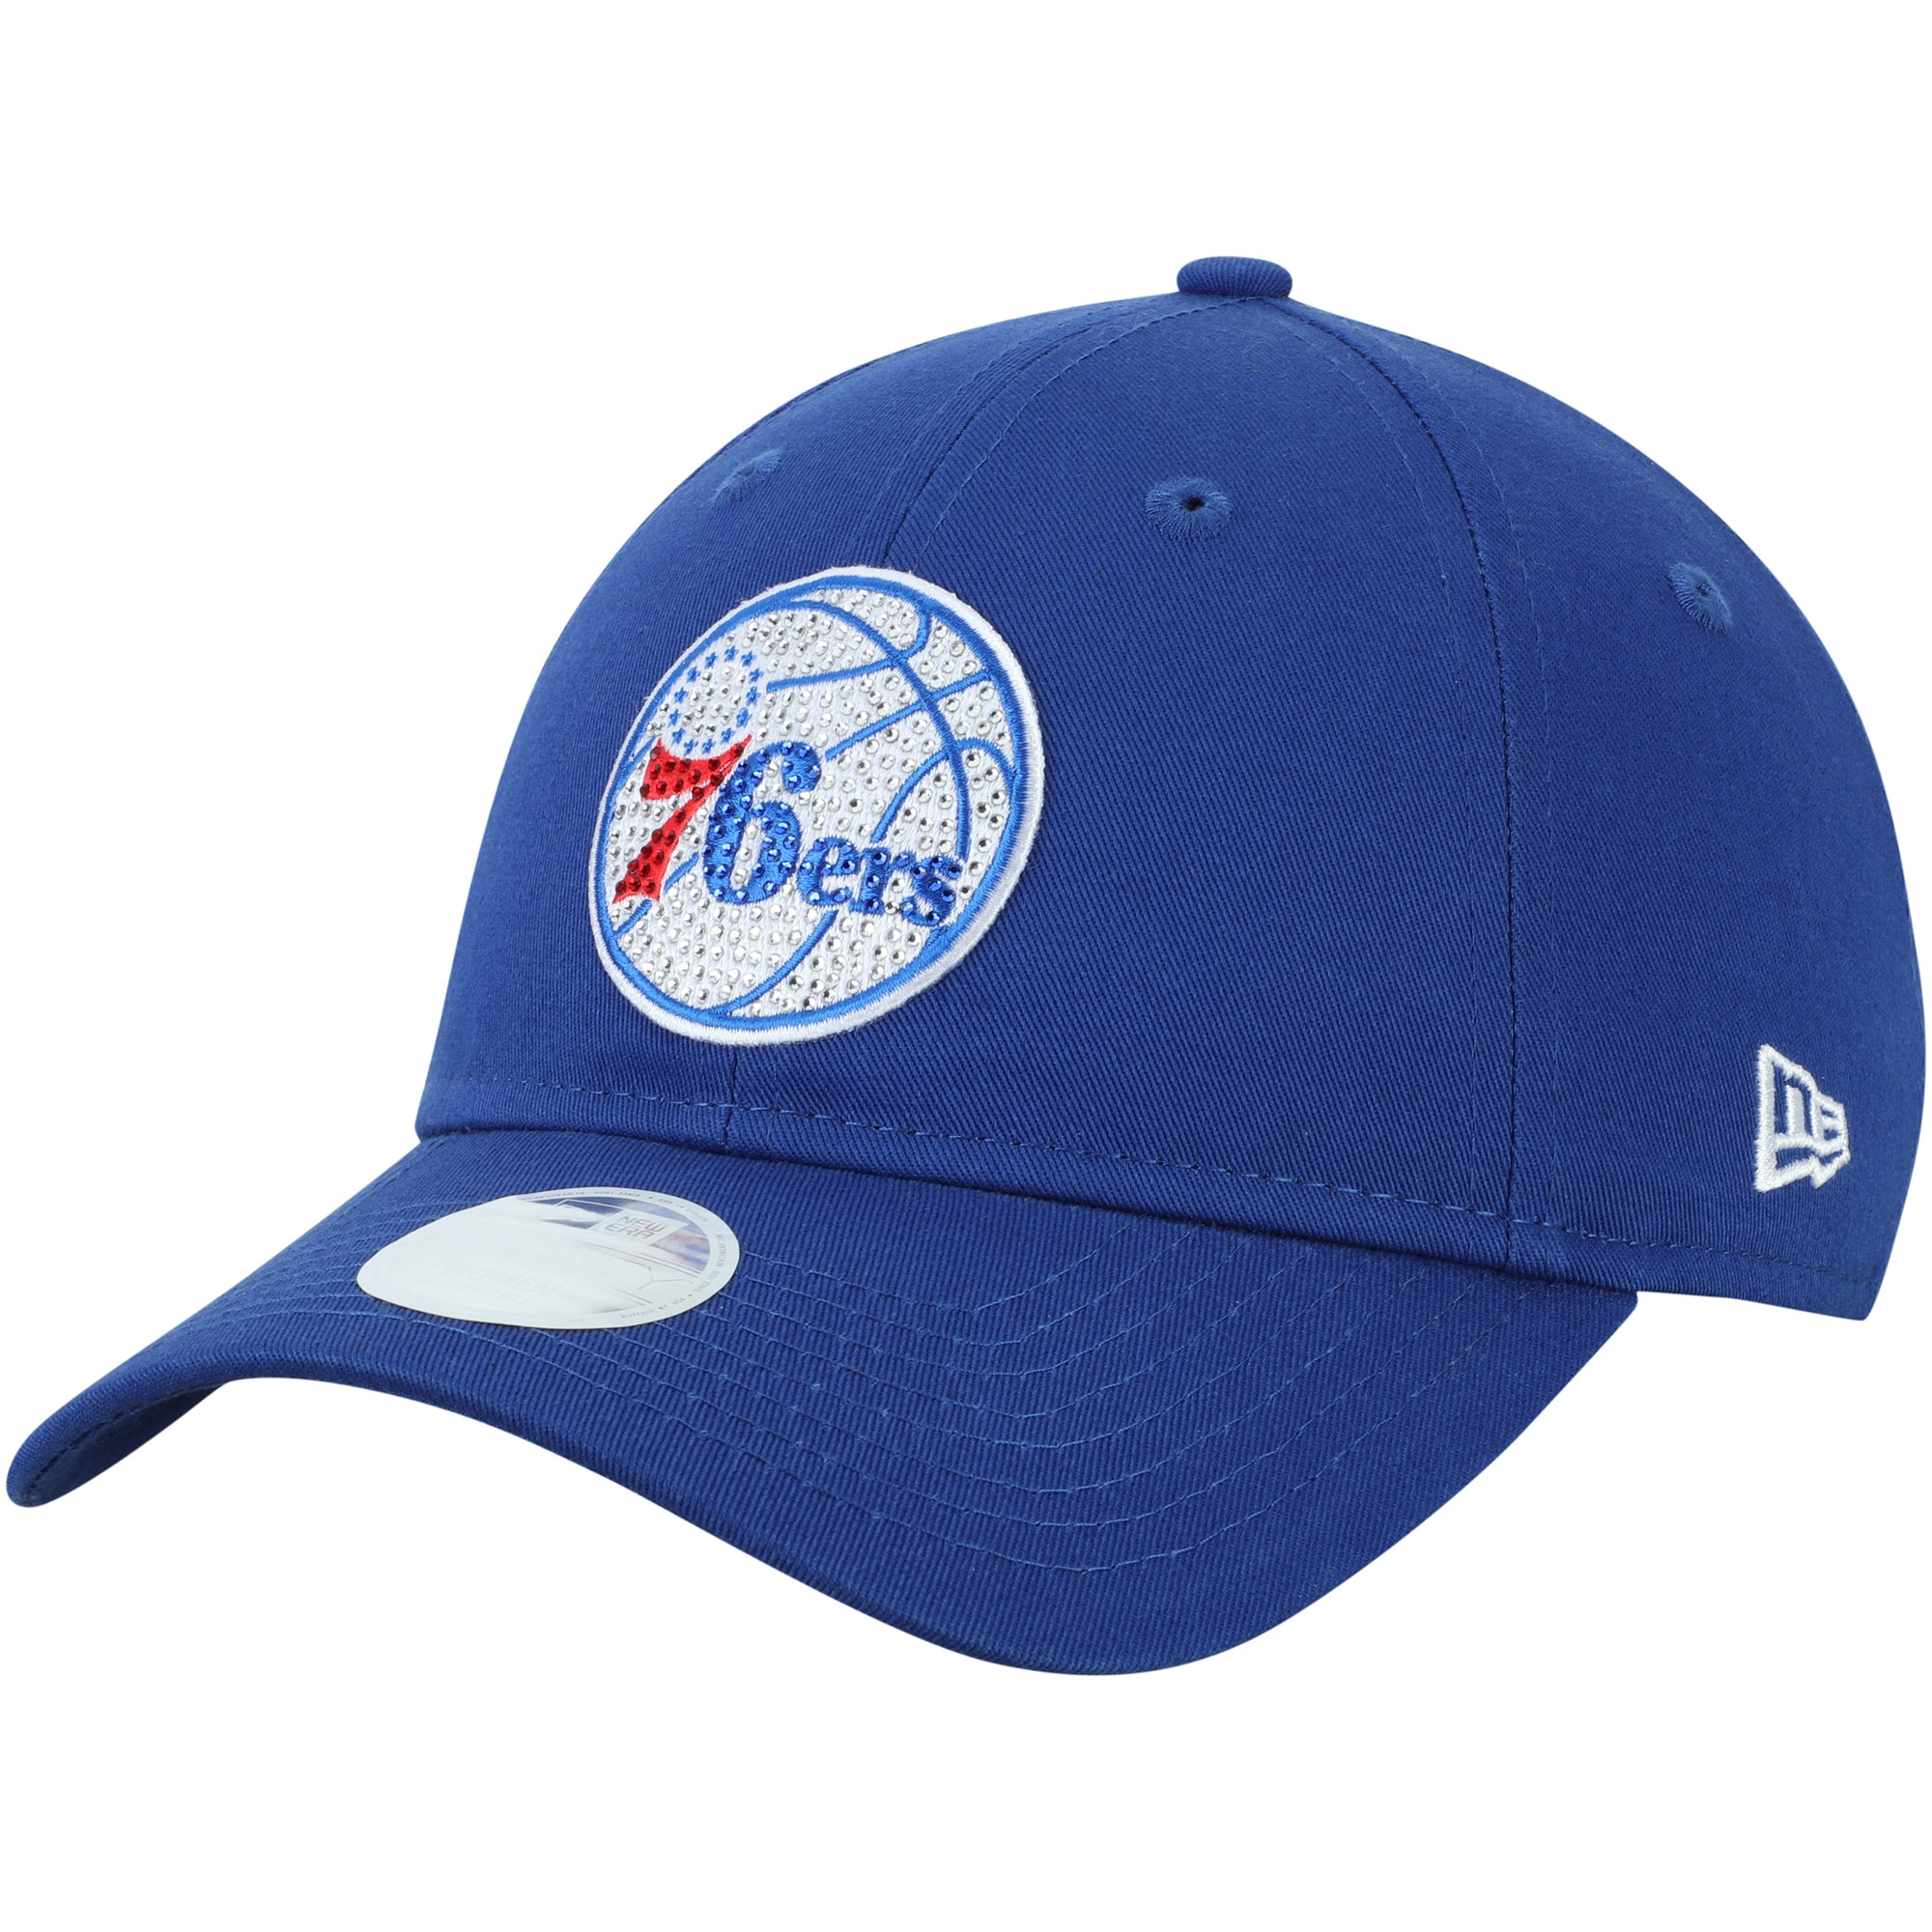 Philadelphia 76ers New Era Women's Dazzle 9TWENTY Adjustable Hat - Royal